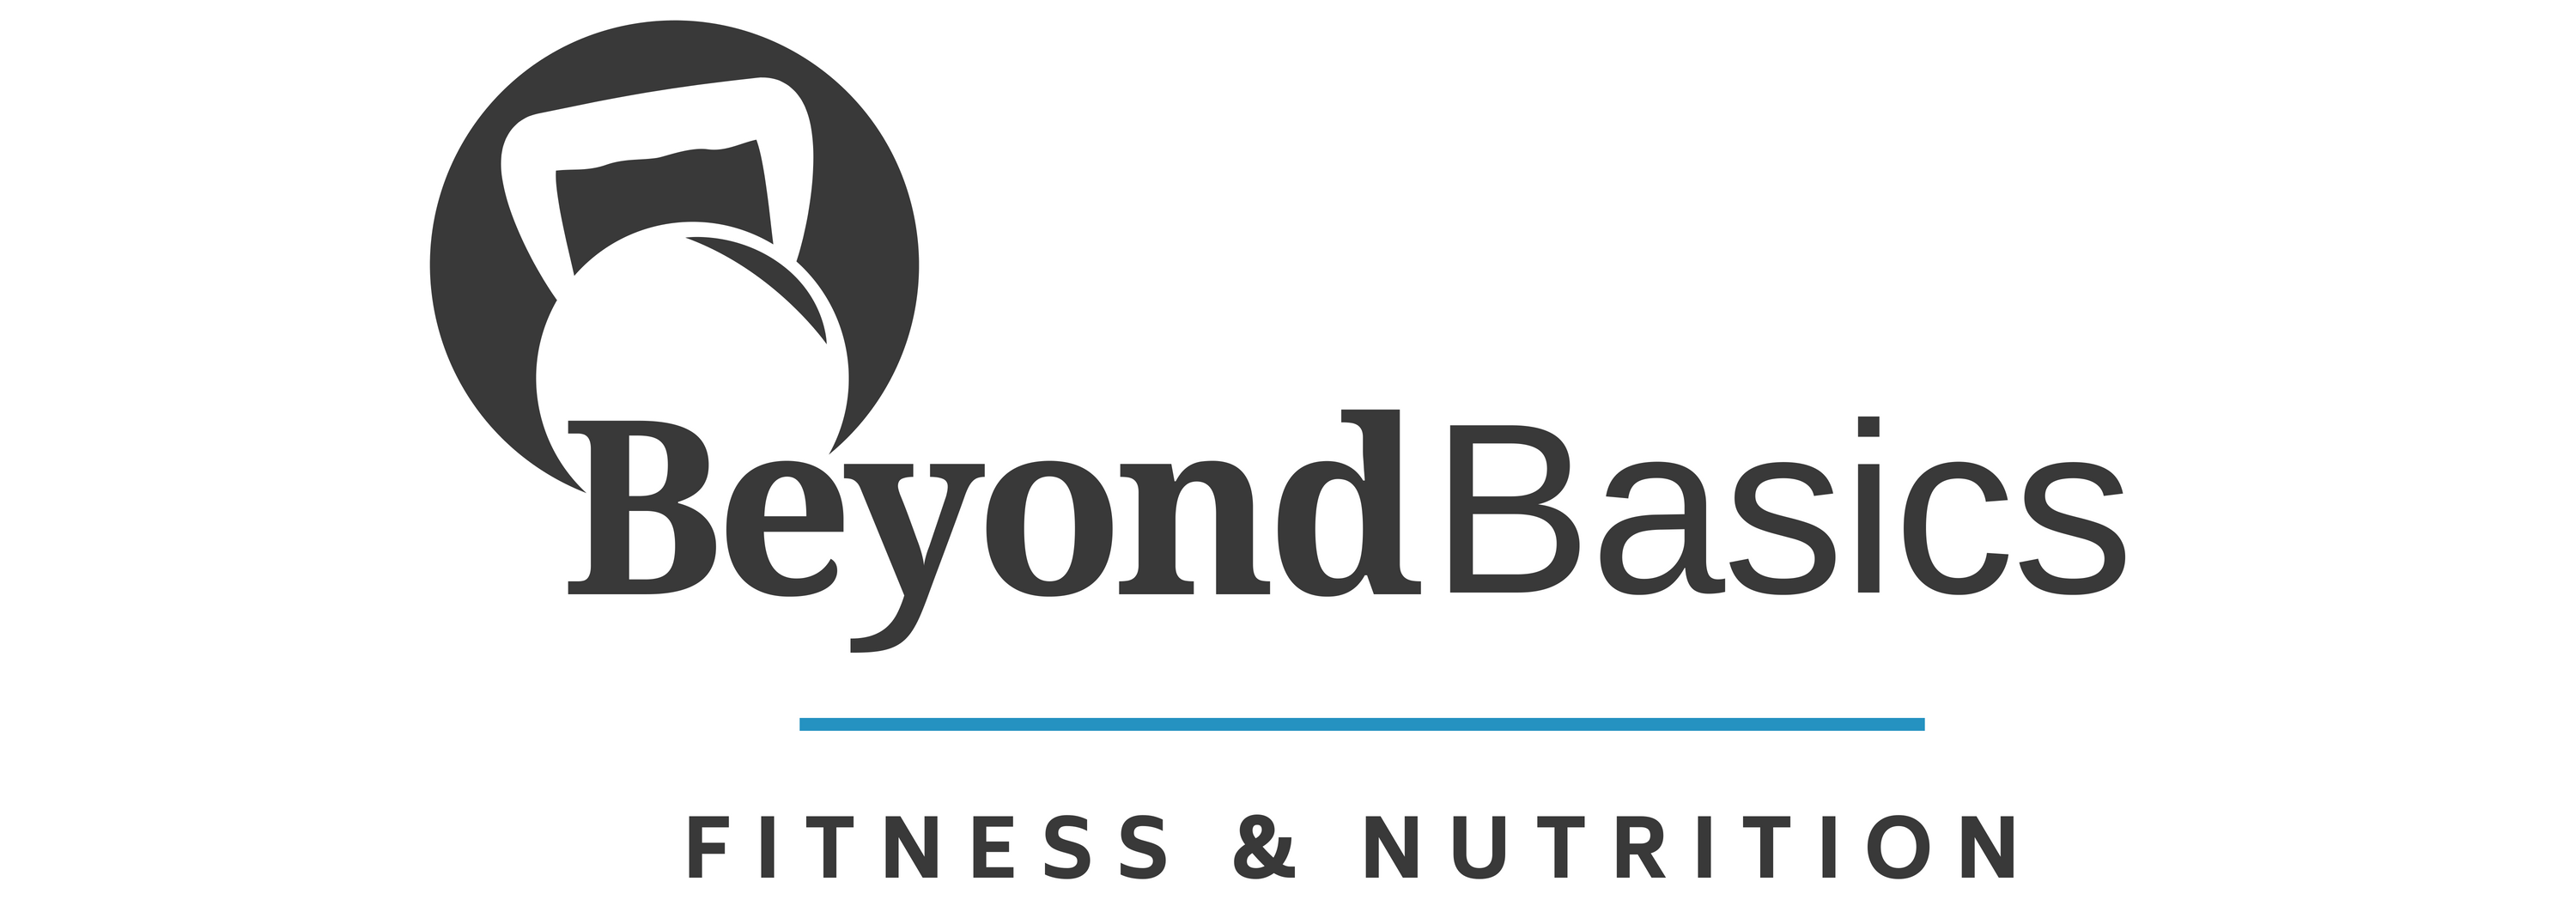 Welcome to Beyond Basics Fitness & Nutrition